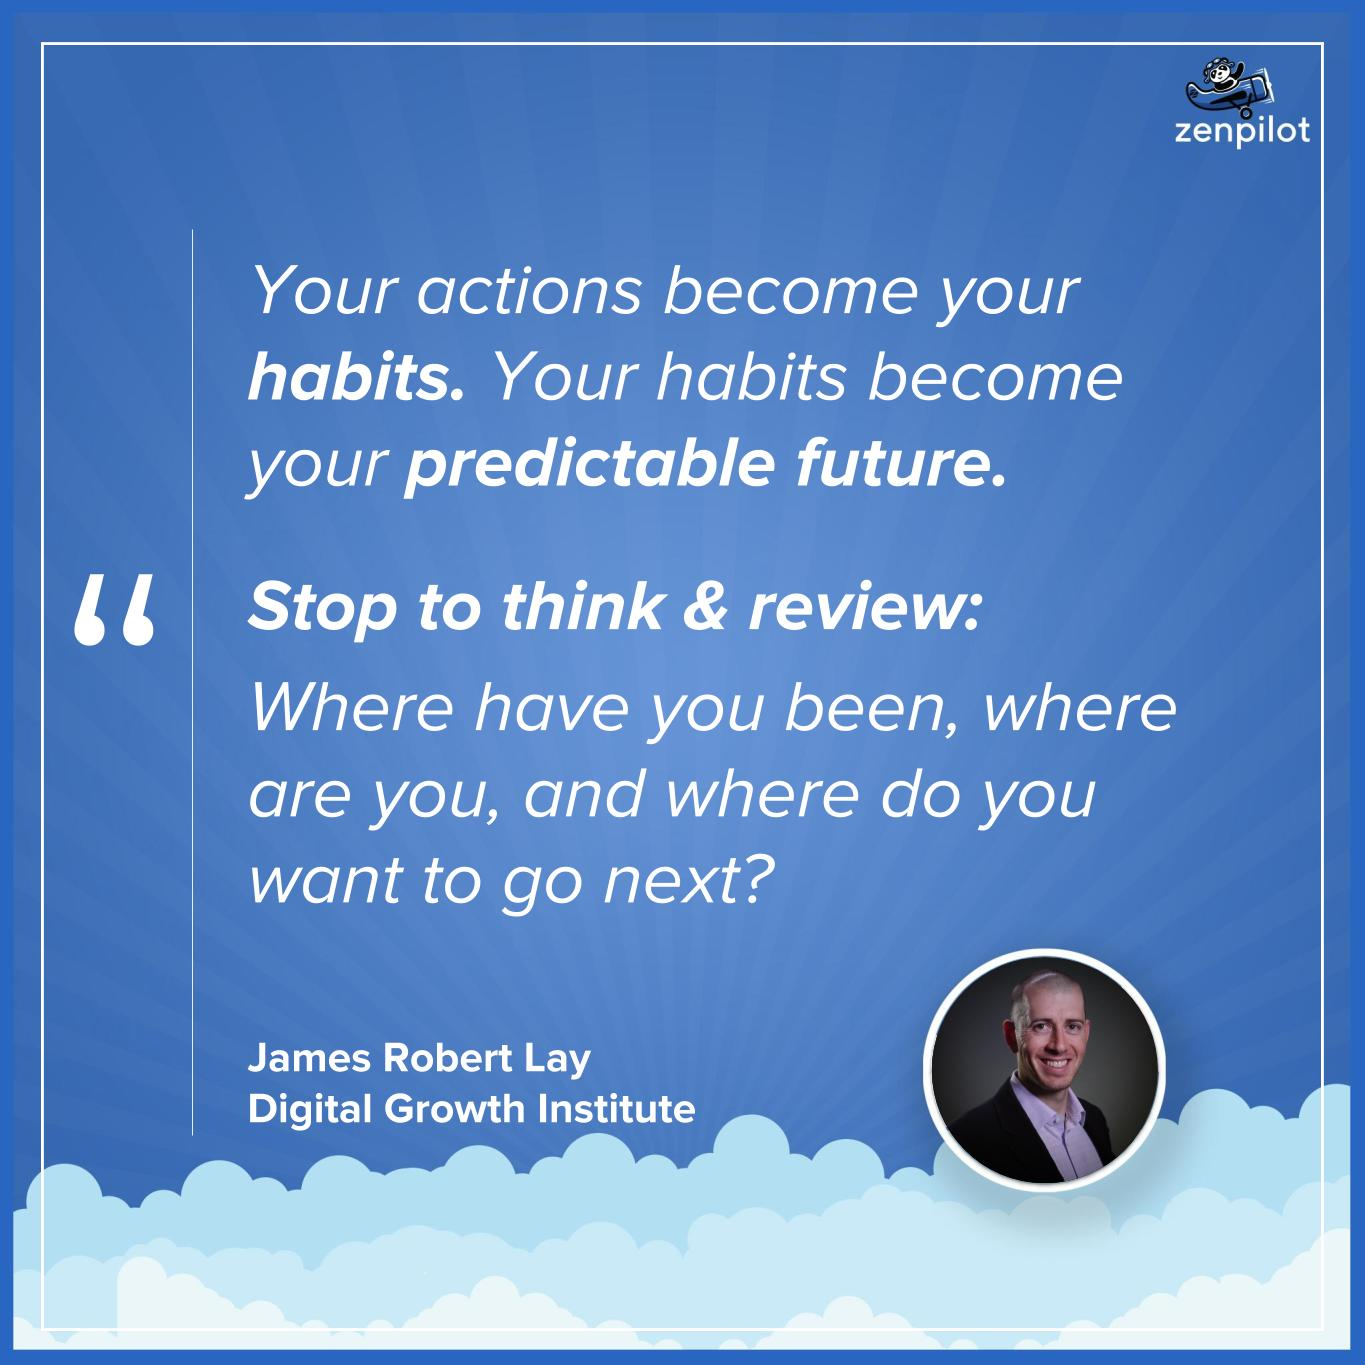 habits-become-your-predictable-future-james-robert-lay-agency-journey